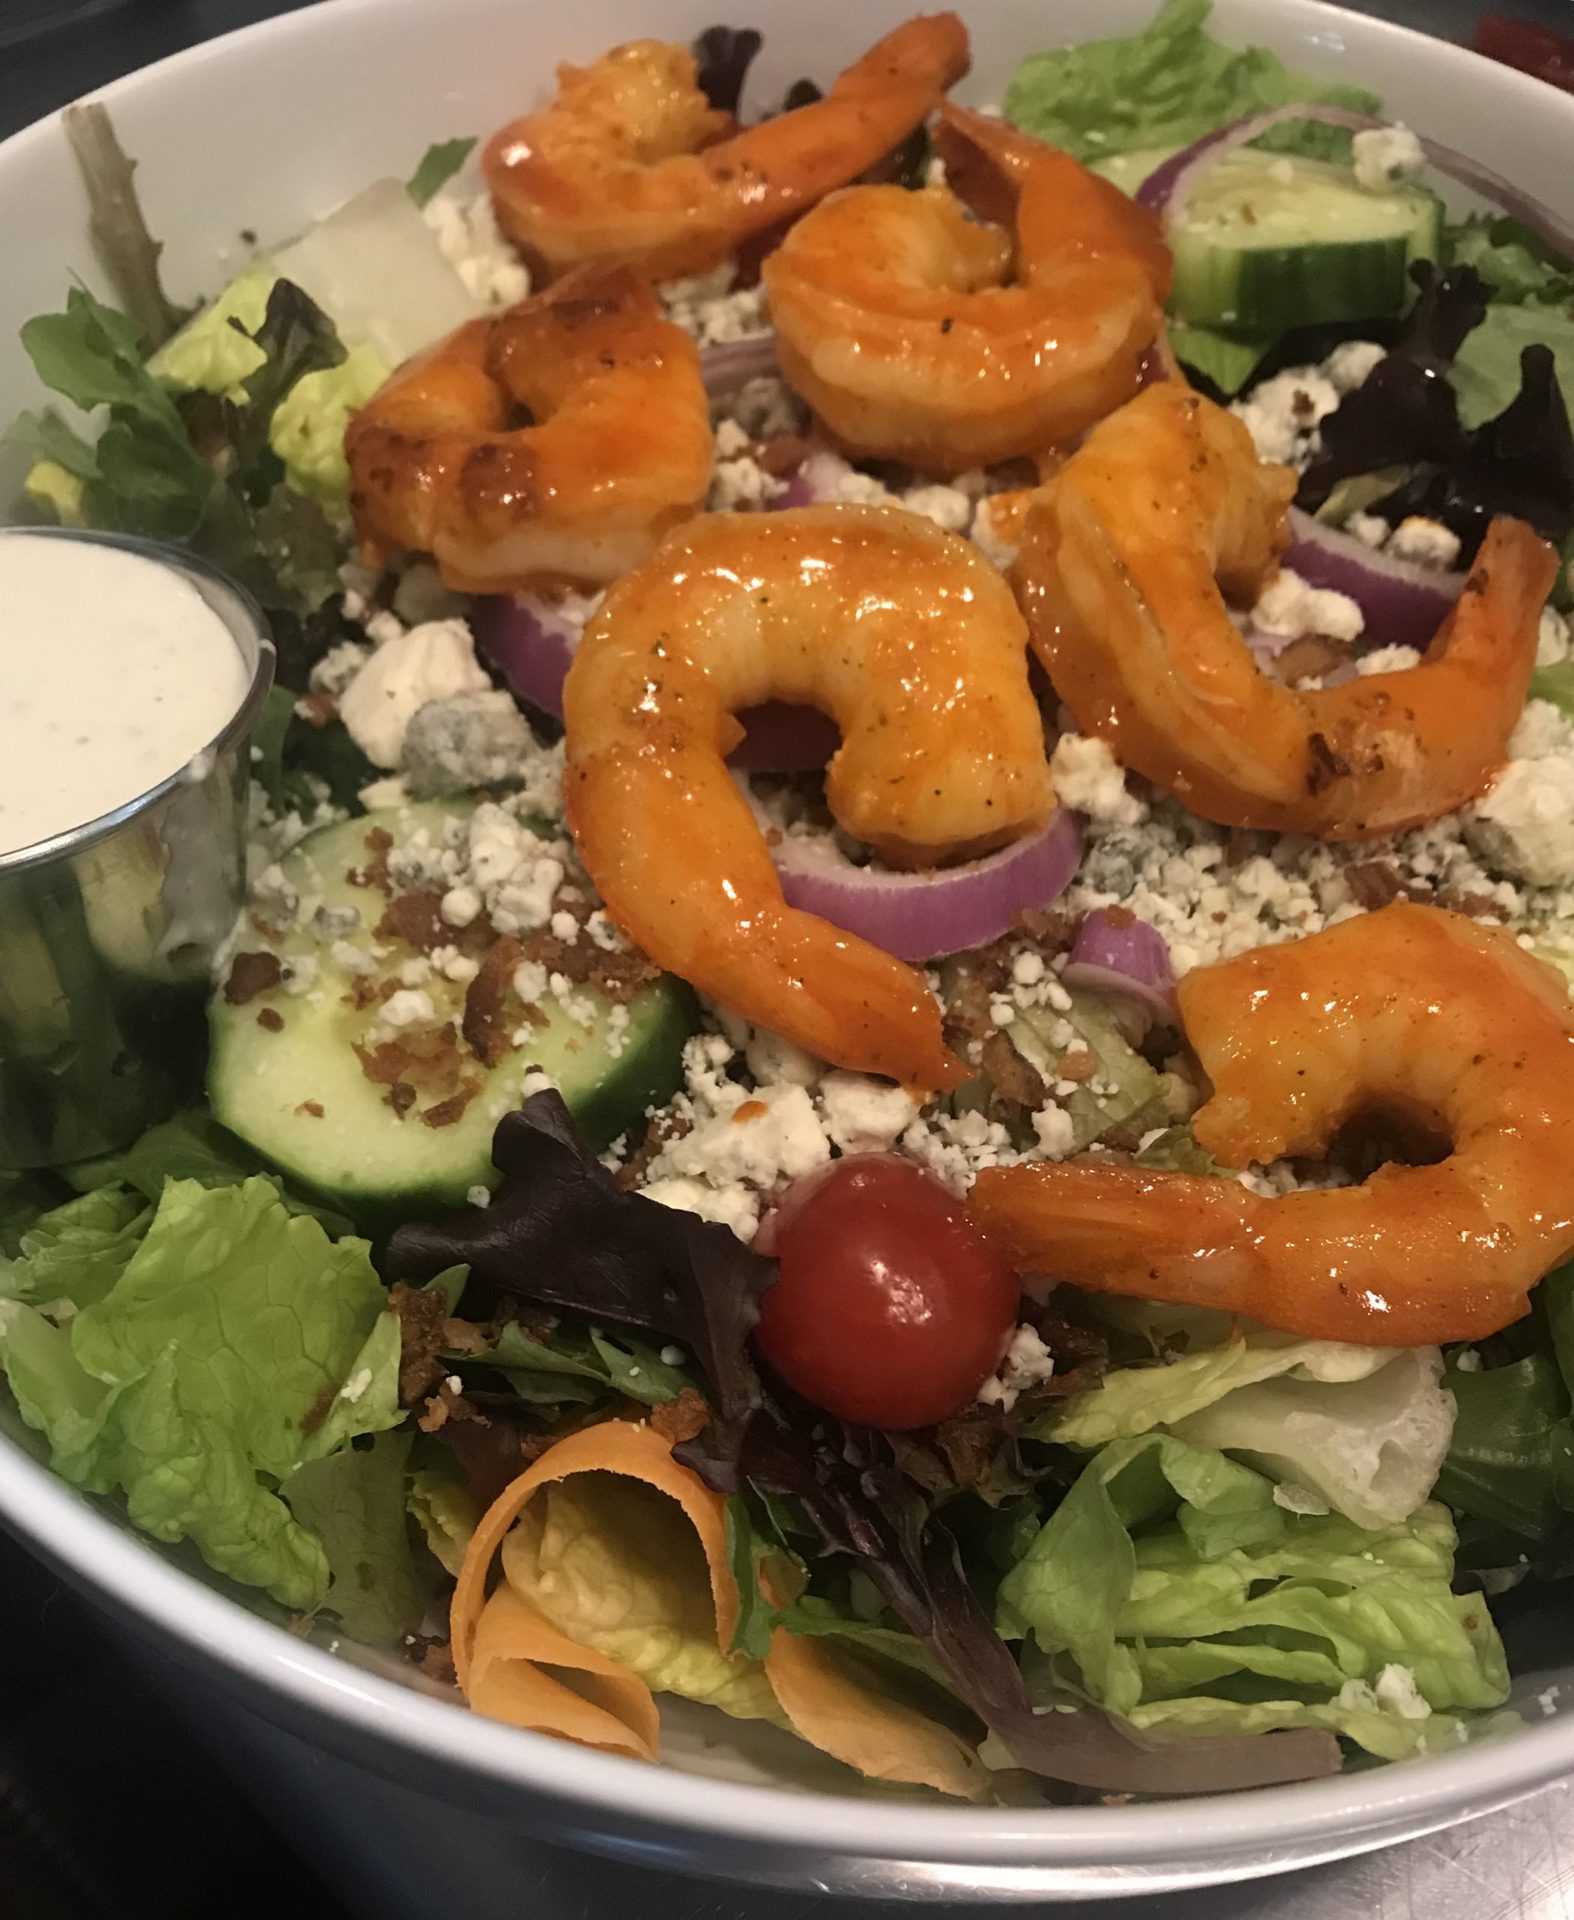 Salad with shrimp in a bowl.